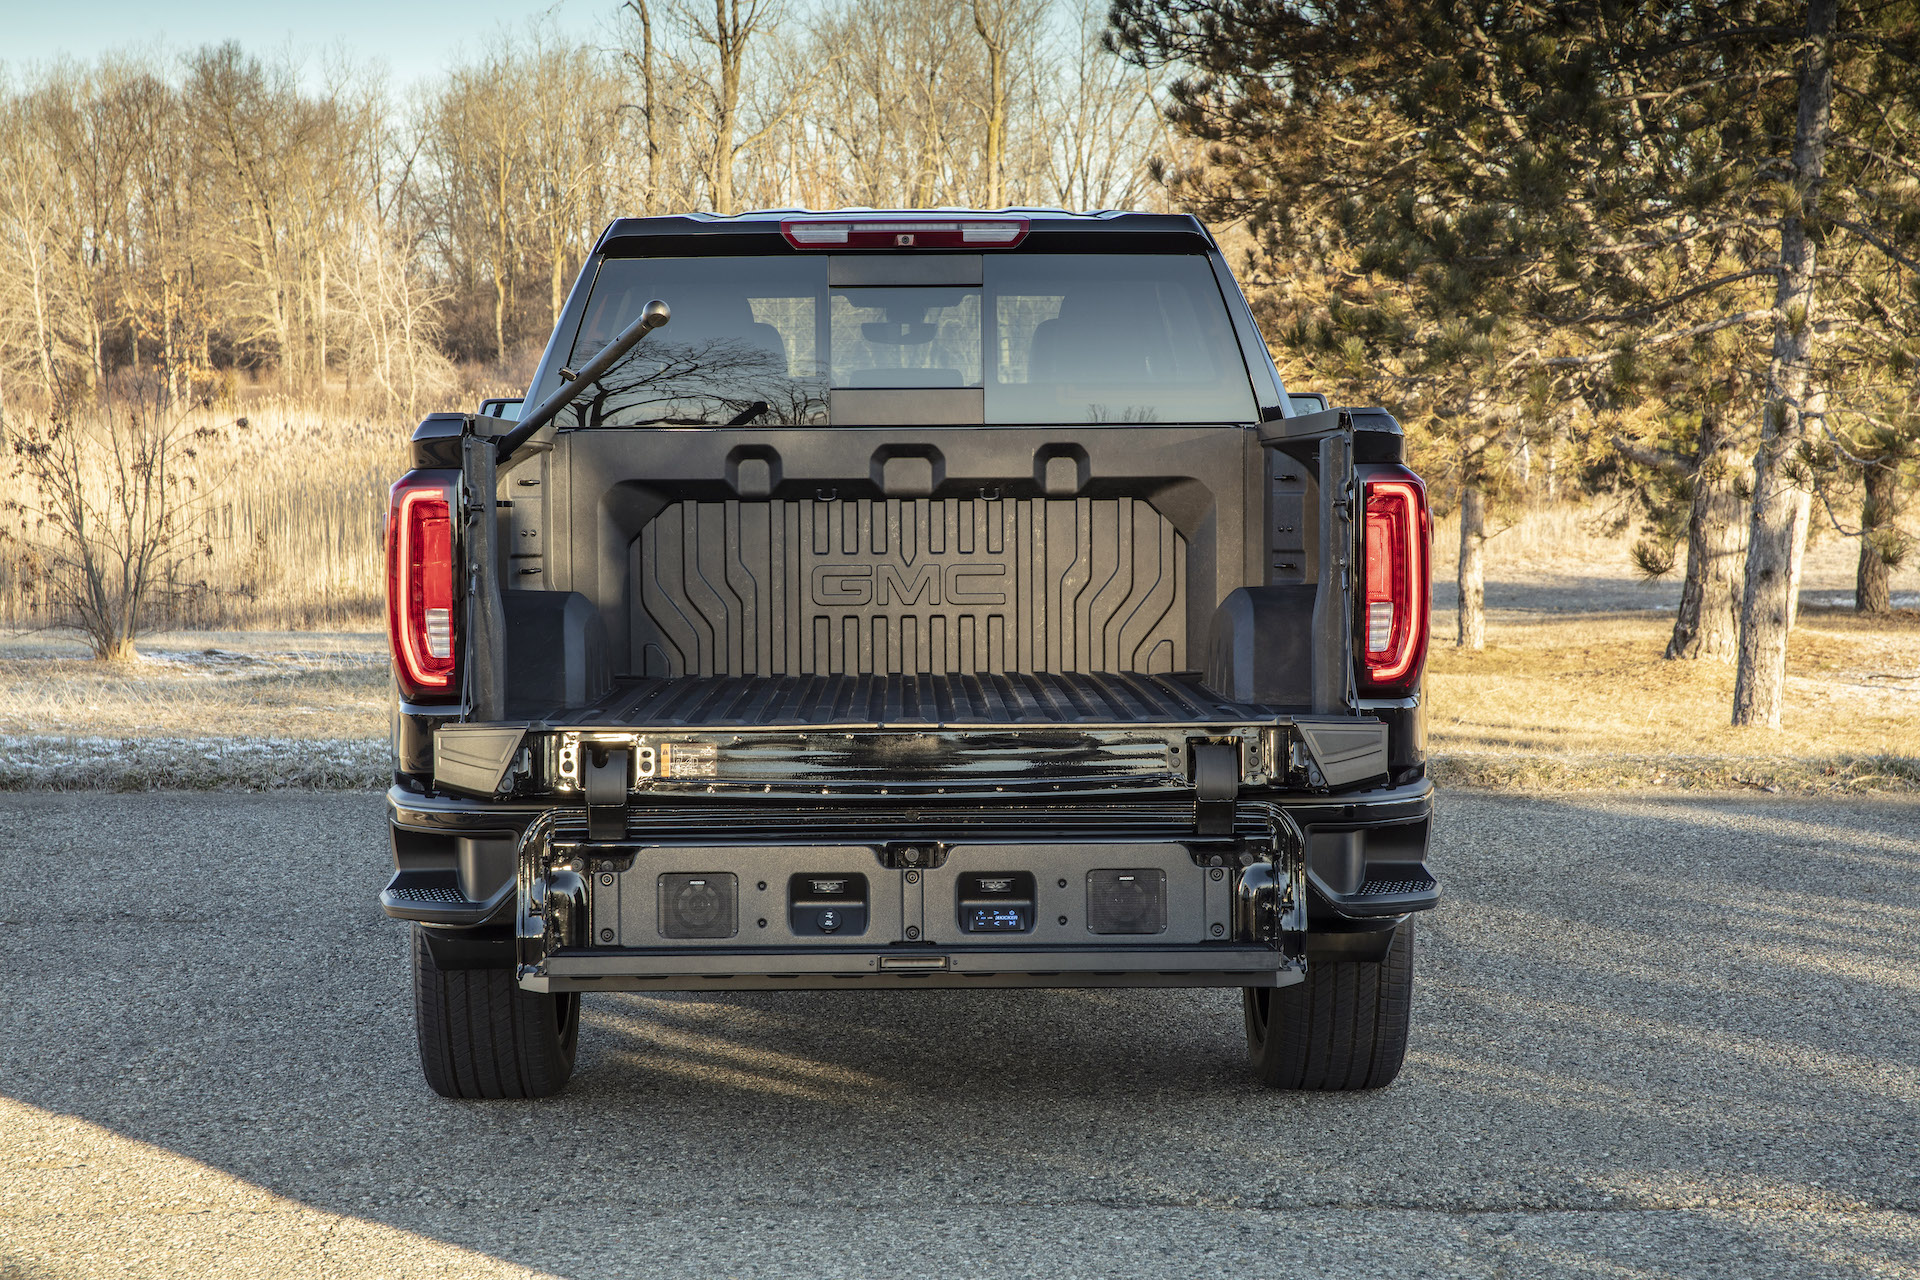 GMC Sierra 1500 CarbonPro bed brings supercar tech to ...